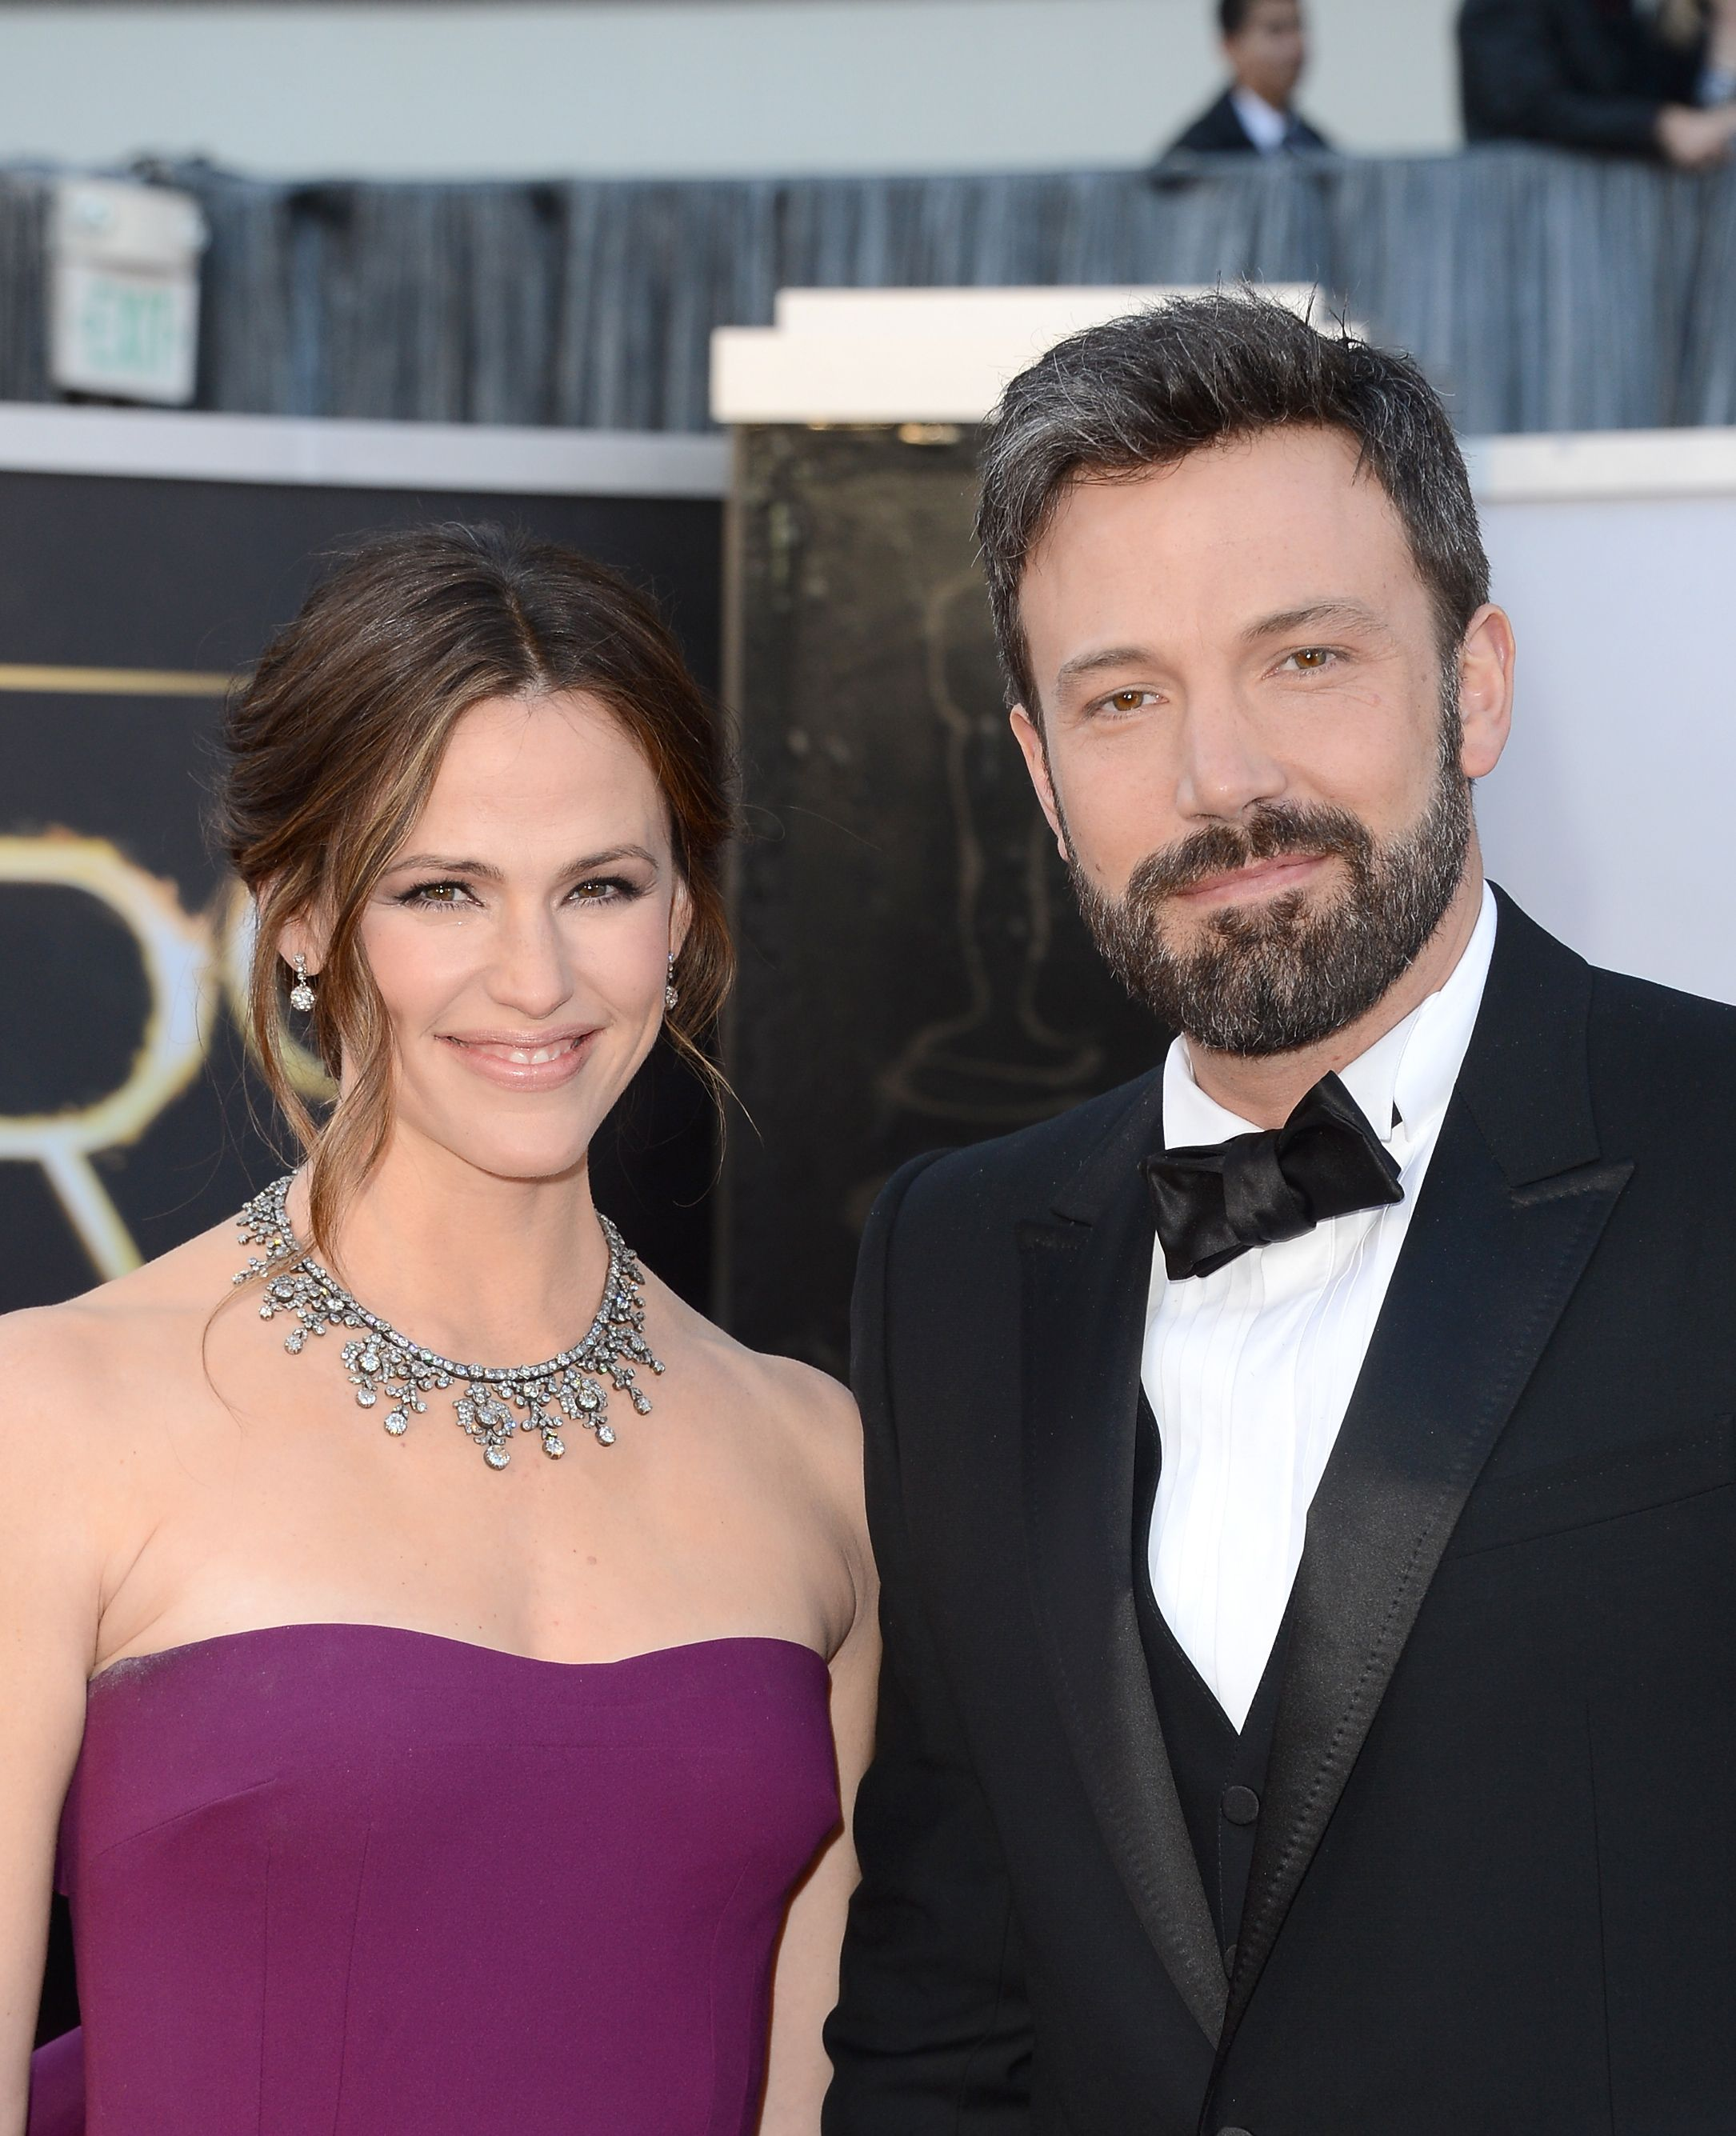 Jennifer Garner und Ben Affleck treffen am 24. Februar 2013 im Hollywood & Highland Center in Hollywood, Kalifornien, zur Oscar-Verleihung ein. | Quelle: Getty Images